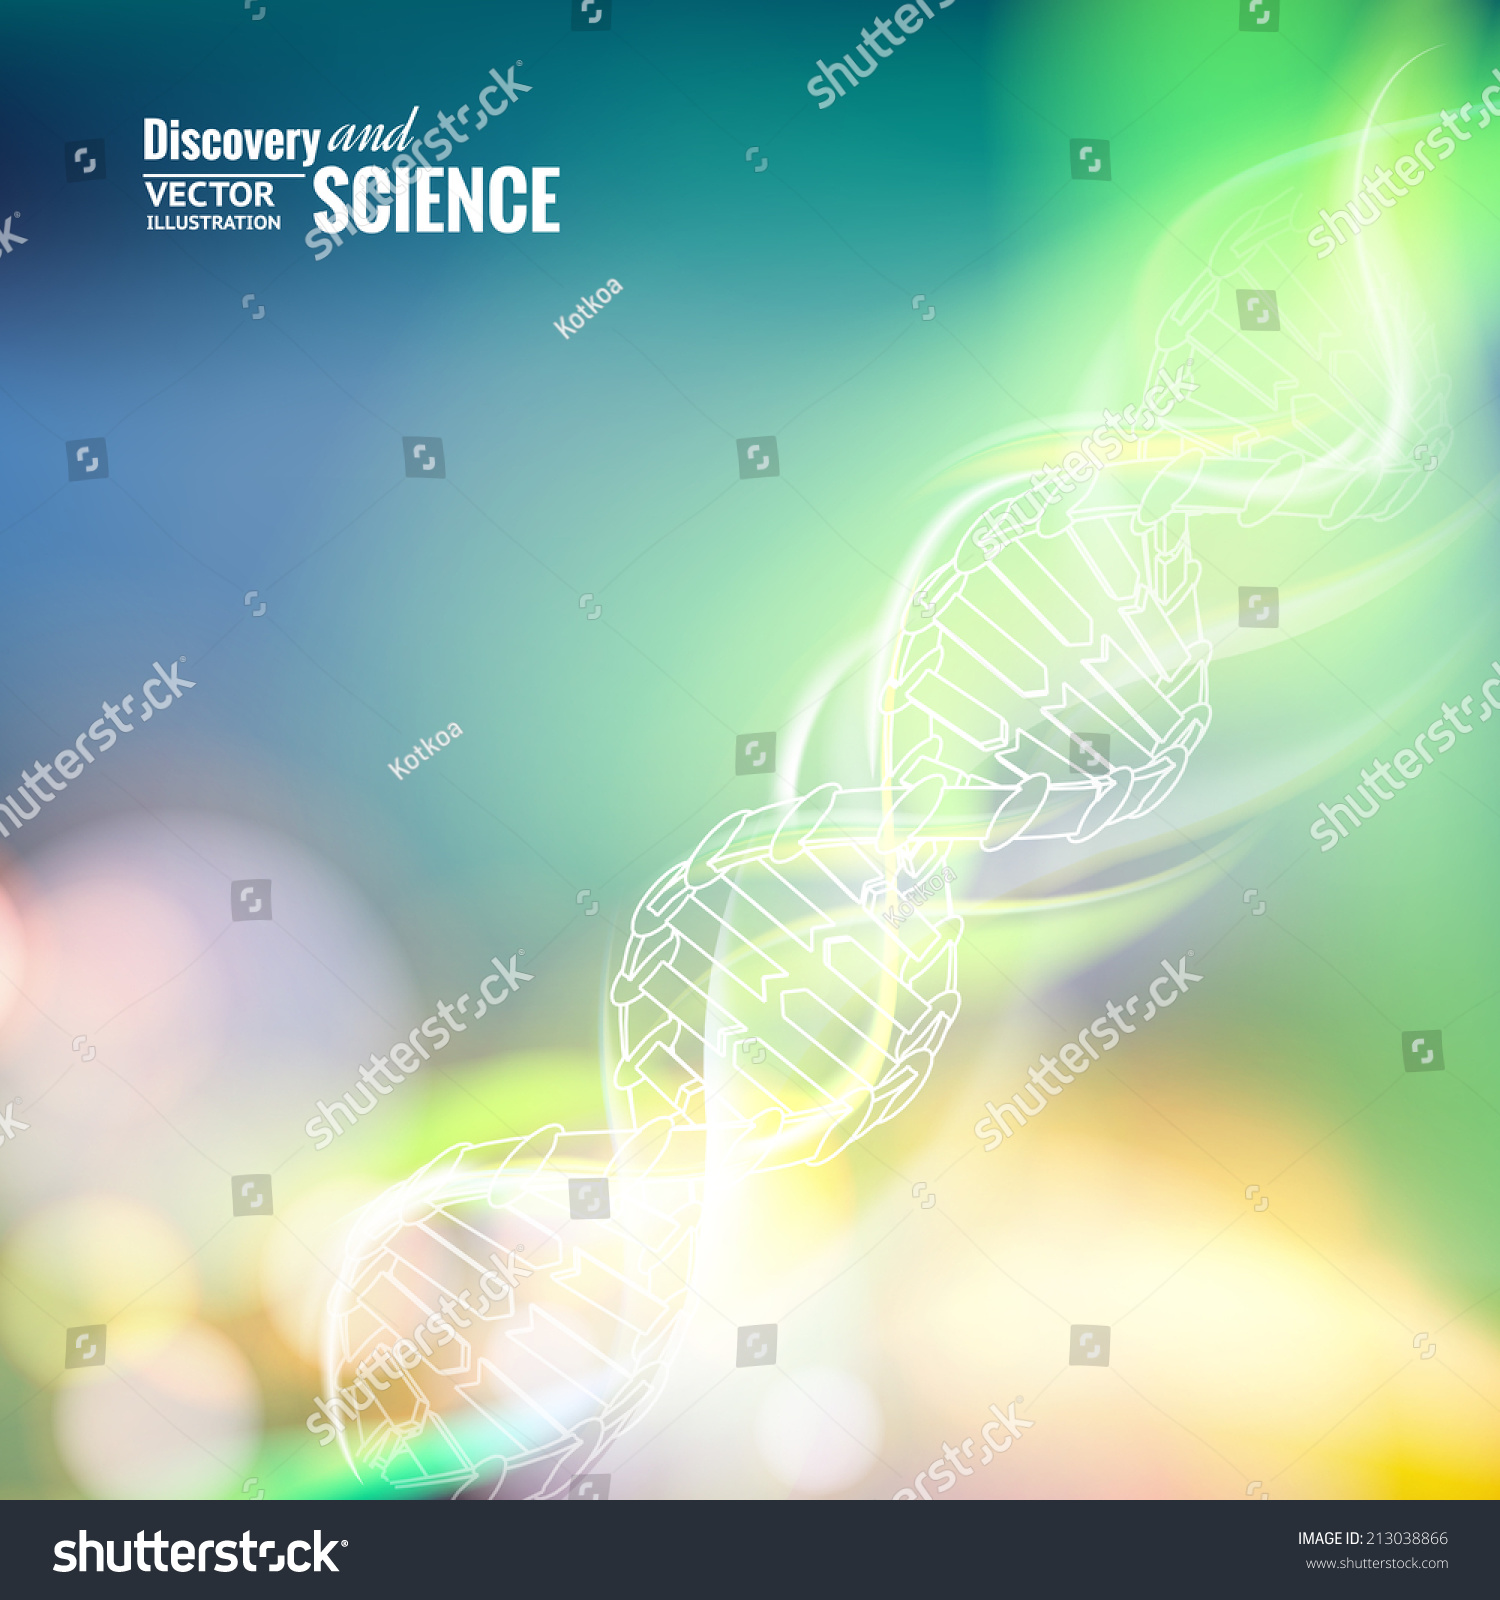 Science concept image of DNA Vector illustration